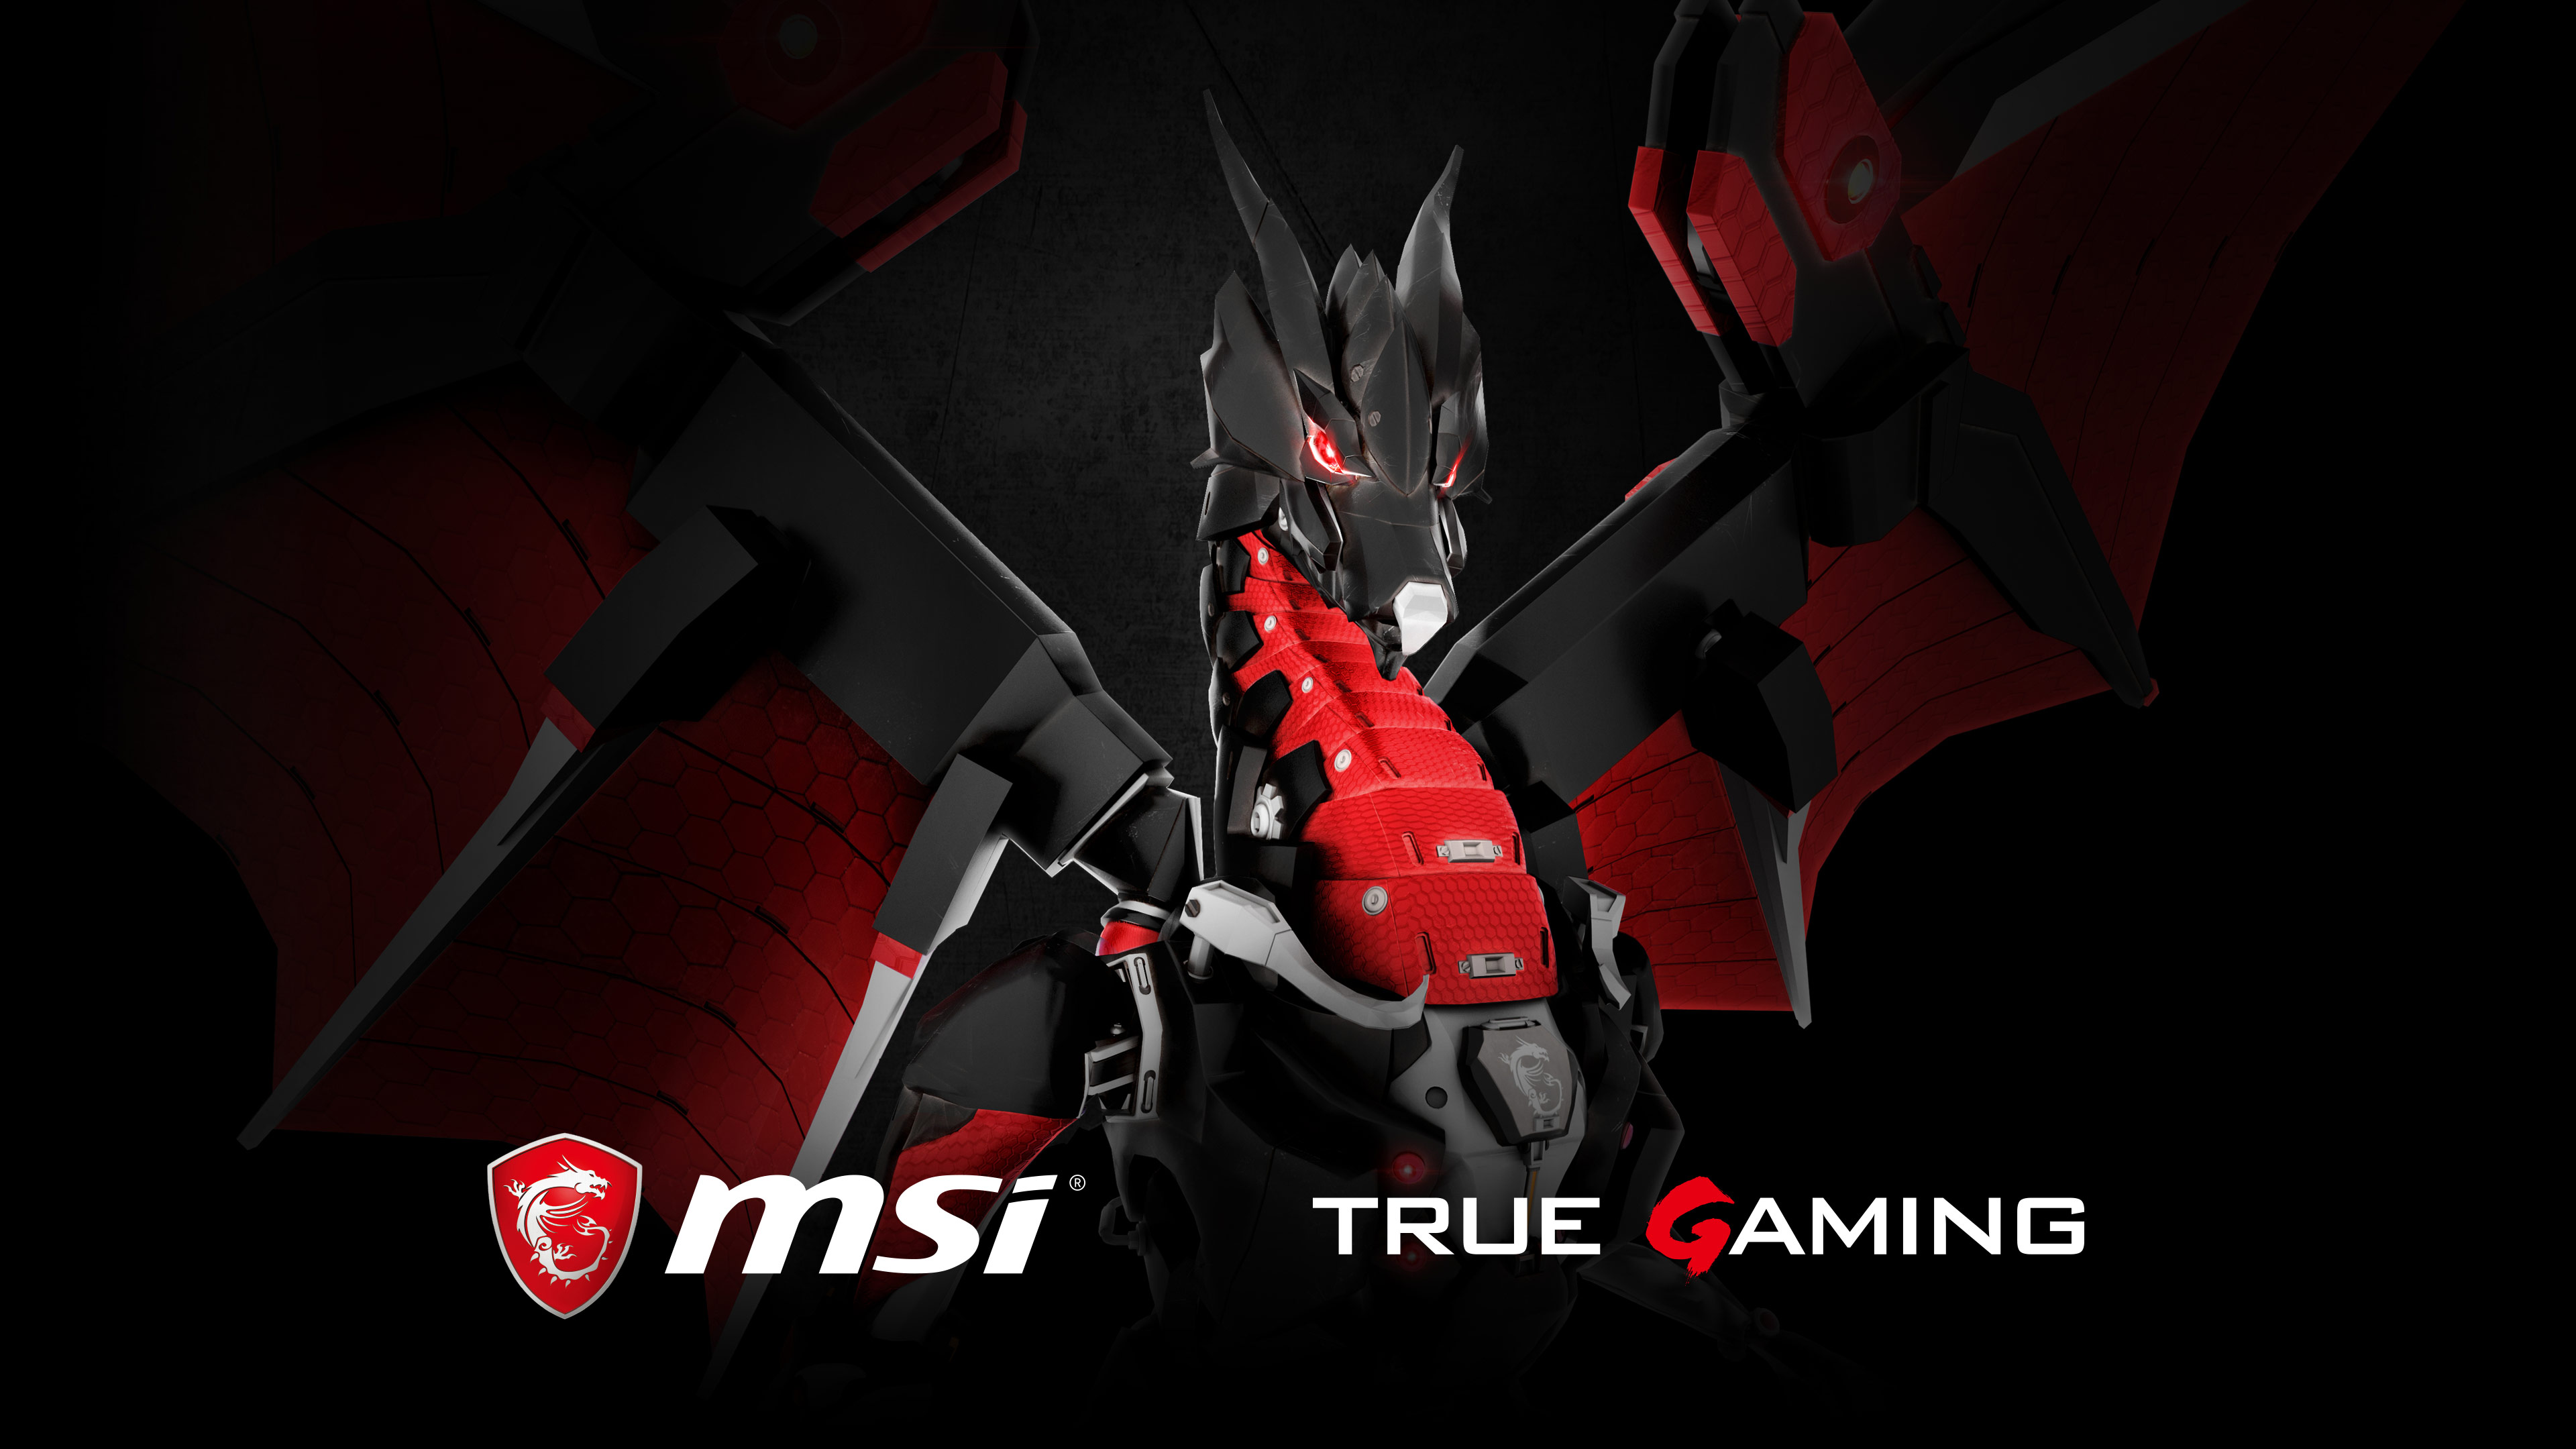 Msi wallpaper 30 3840x2160 - Red gaming wallpaper ...